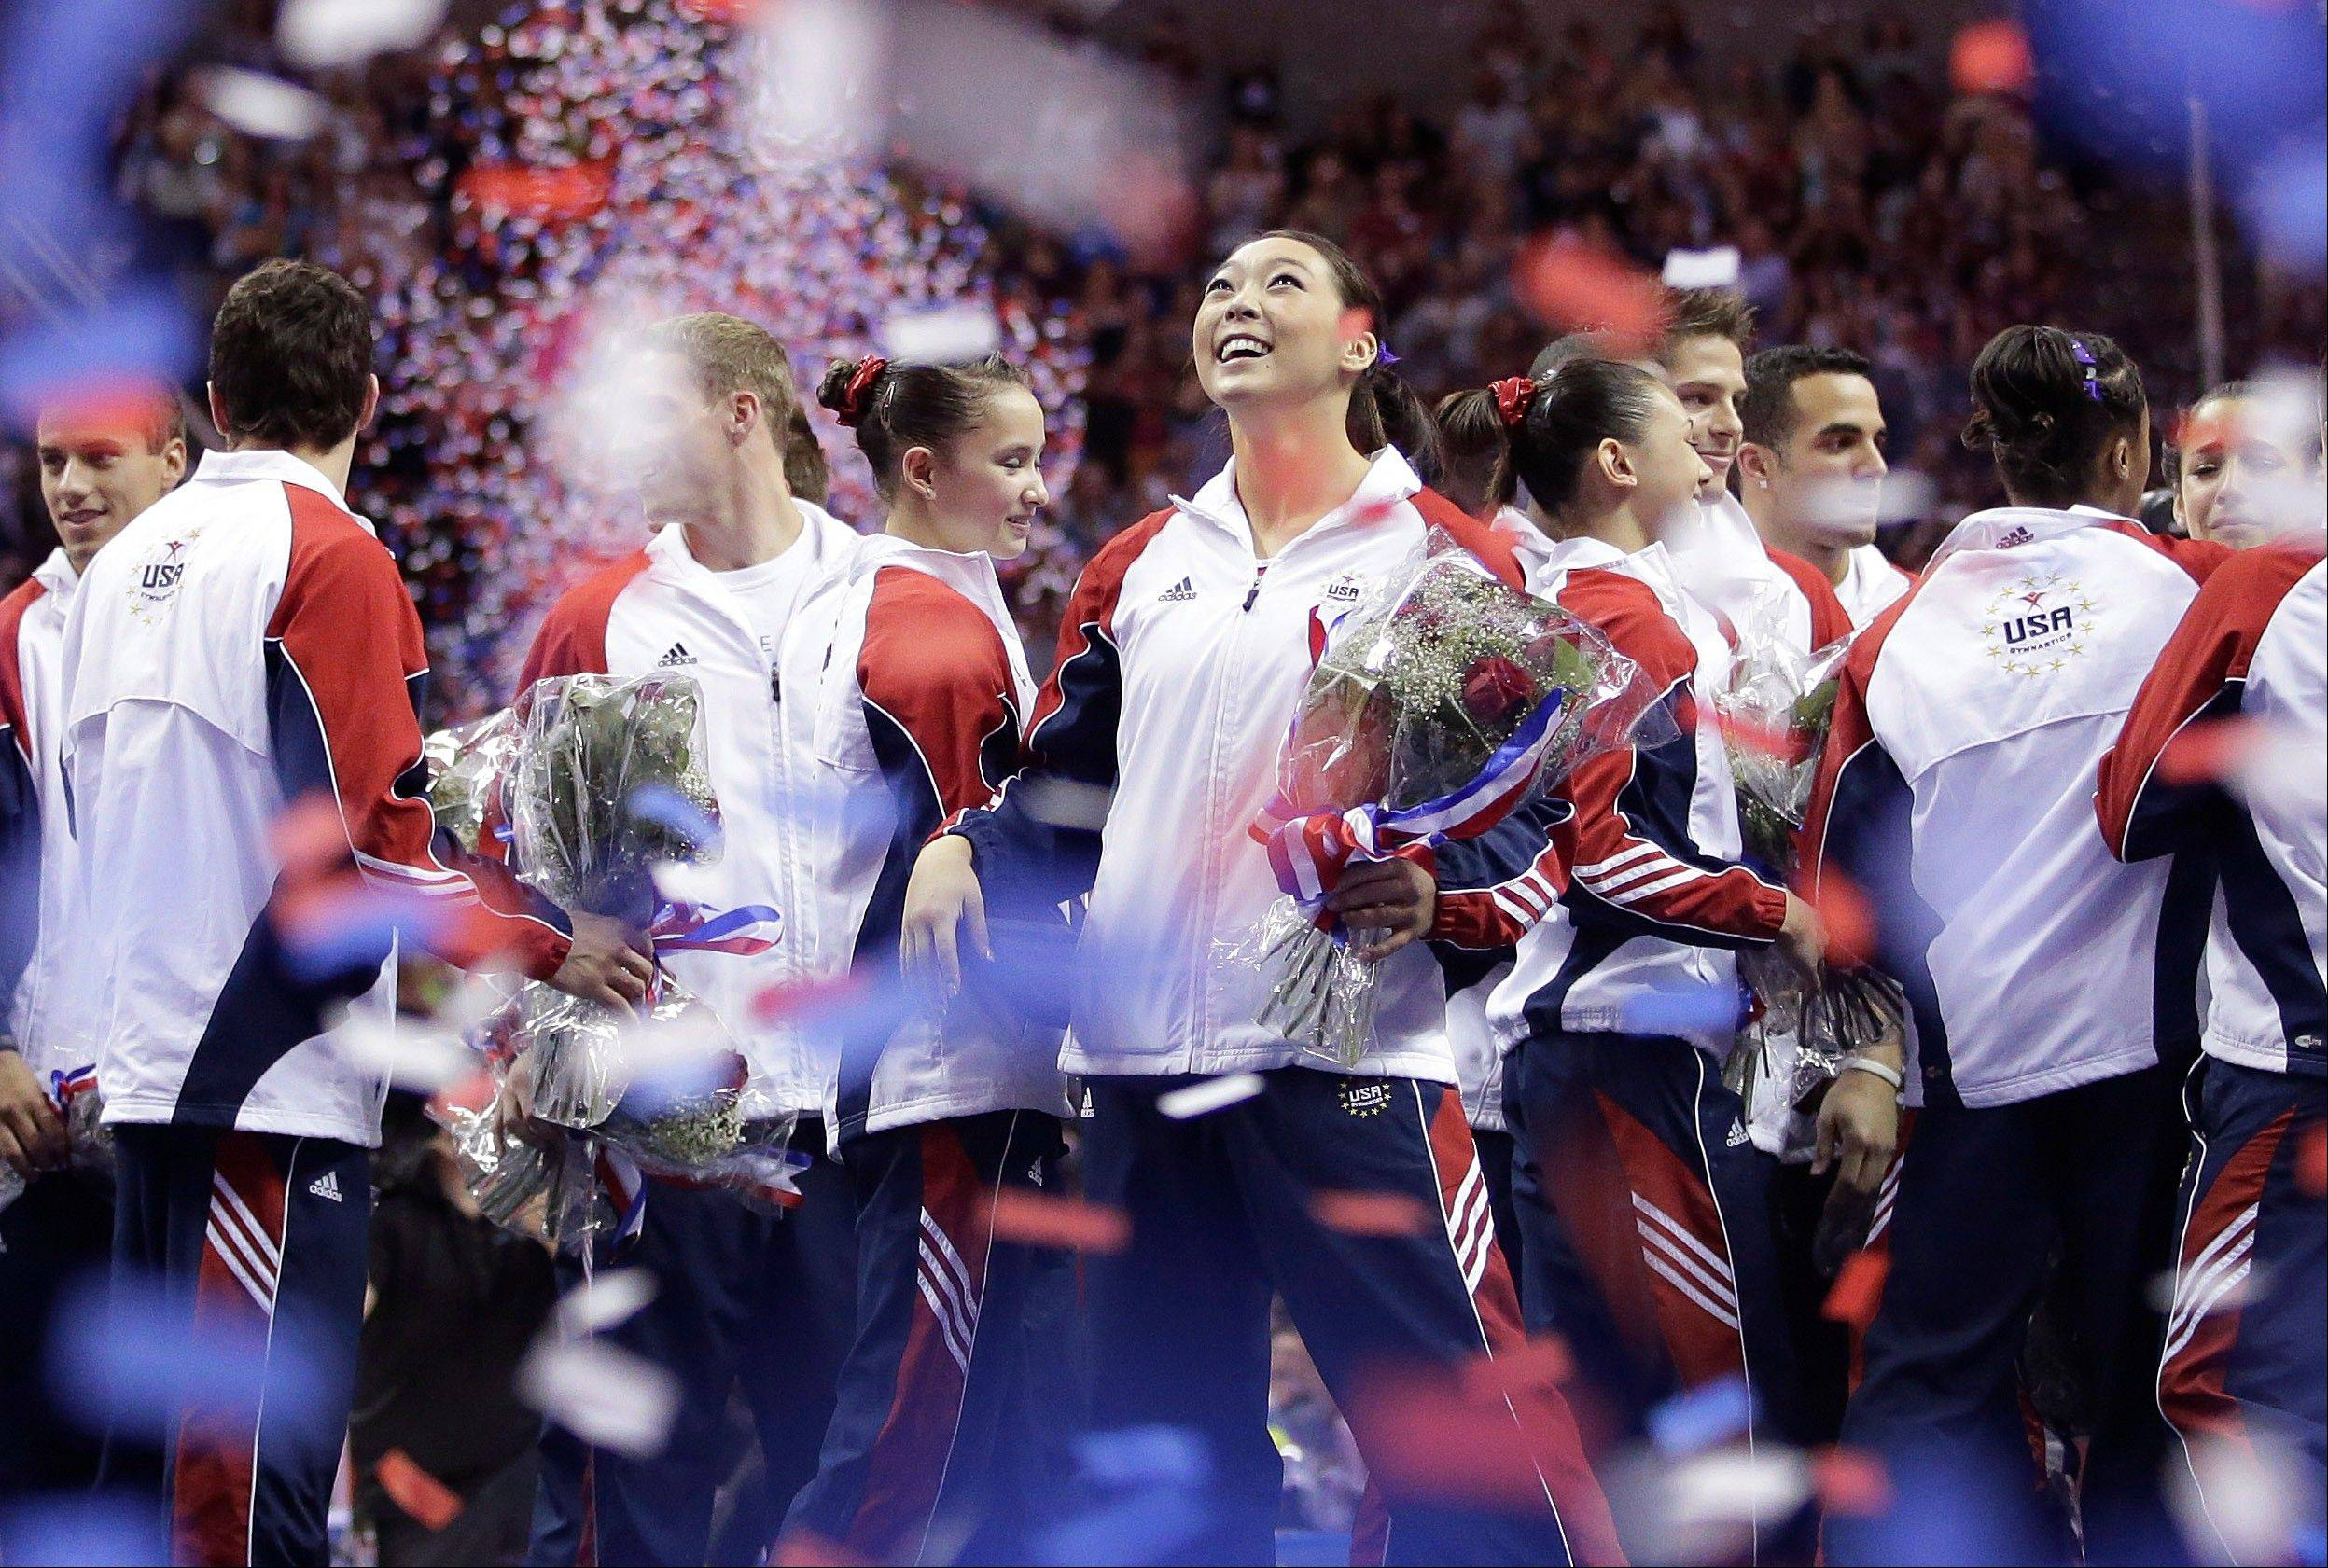 Anna Li, a Waubonsie Valley graduate, reacts as confetti falls after being named as an alternate to the U.S. Olympic gymnastics team Sunday after the final round of the women's Olympic gymnastics trials. At 23, Li is the oldest member of the team.